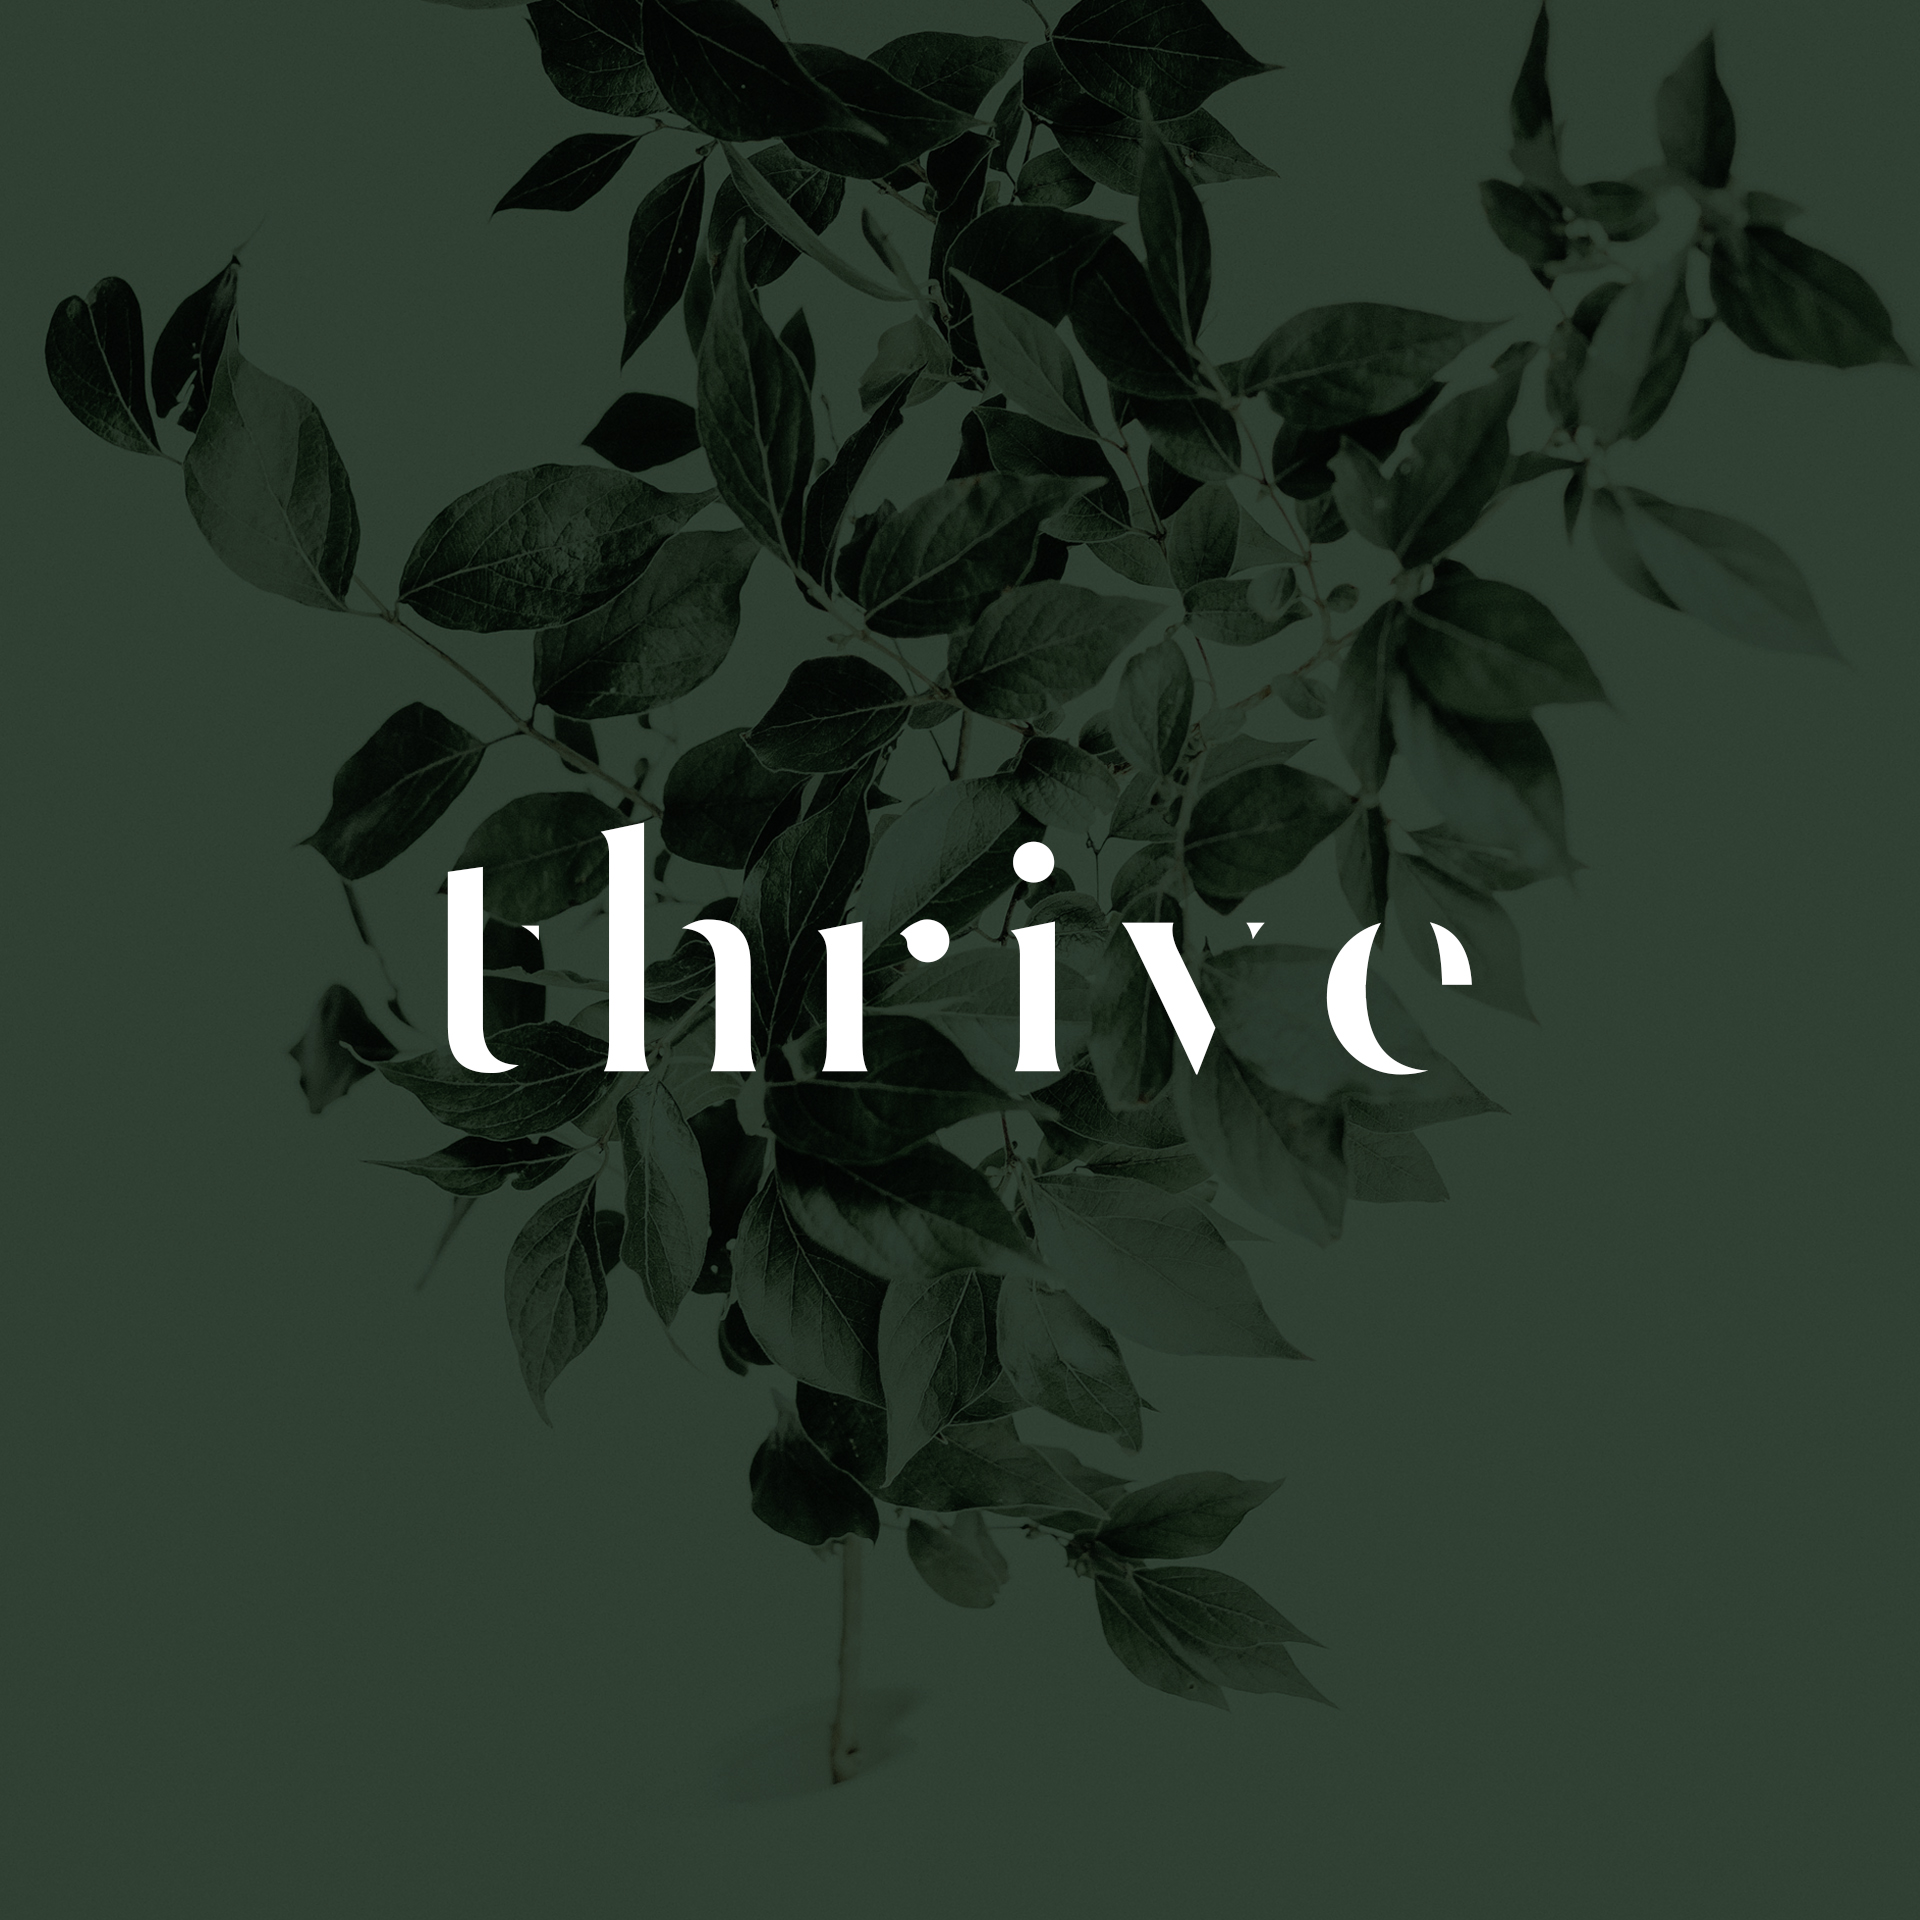 thriev bjc website logo 2.jpg